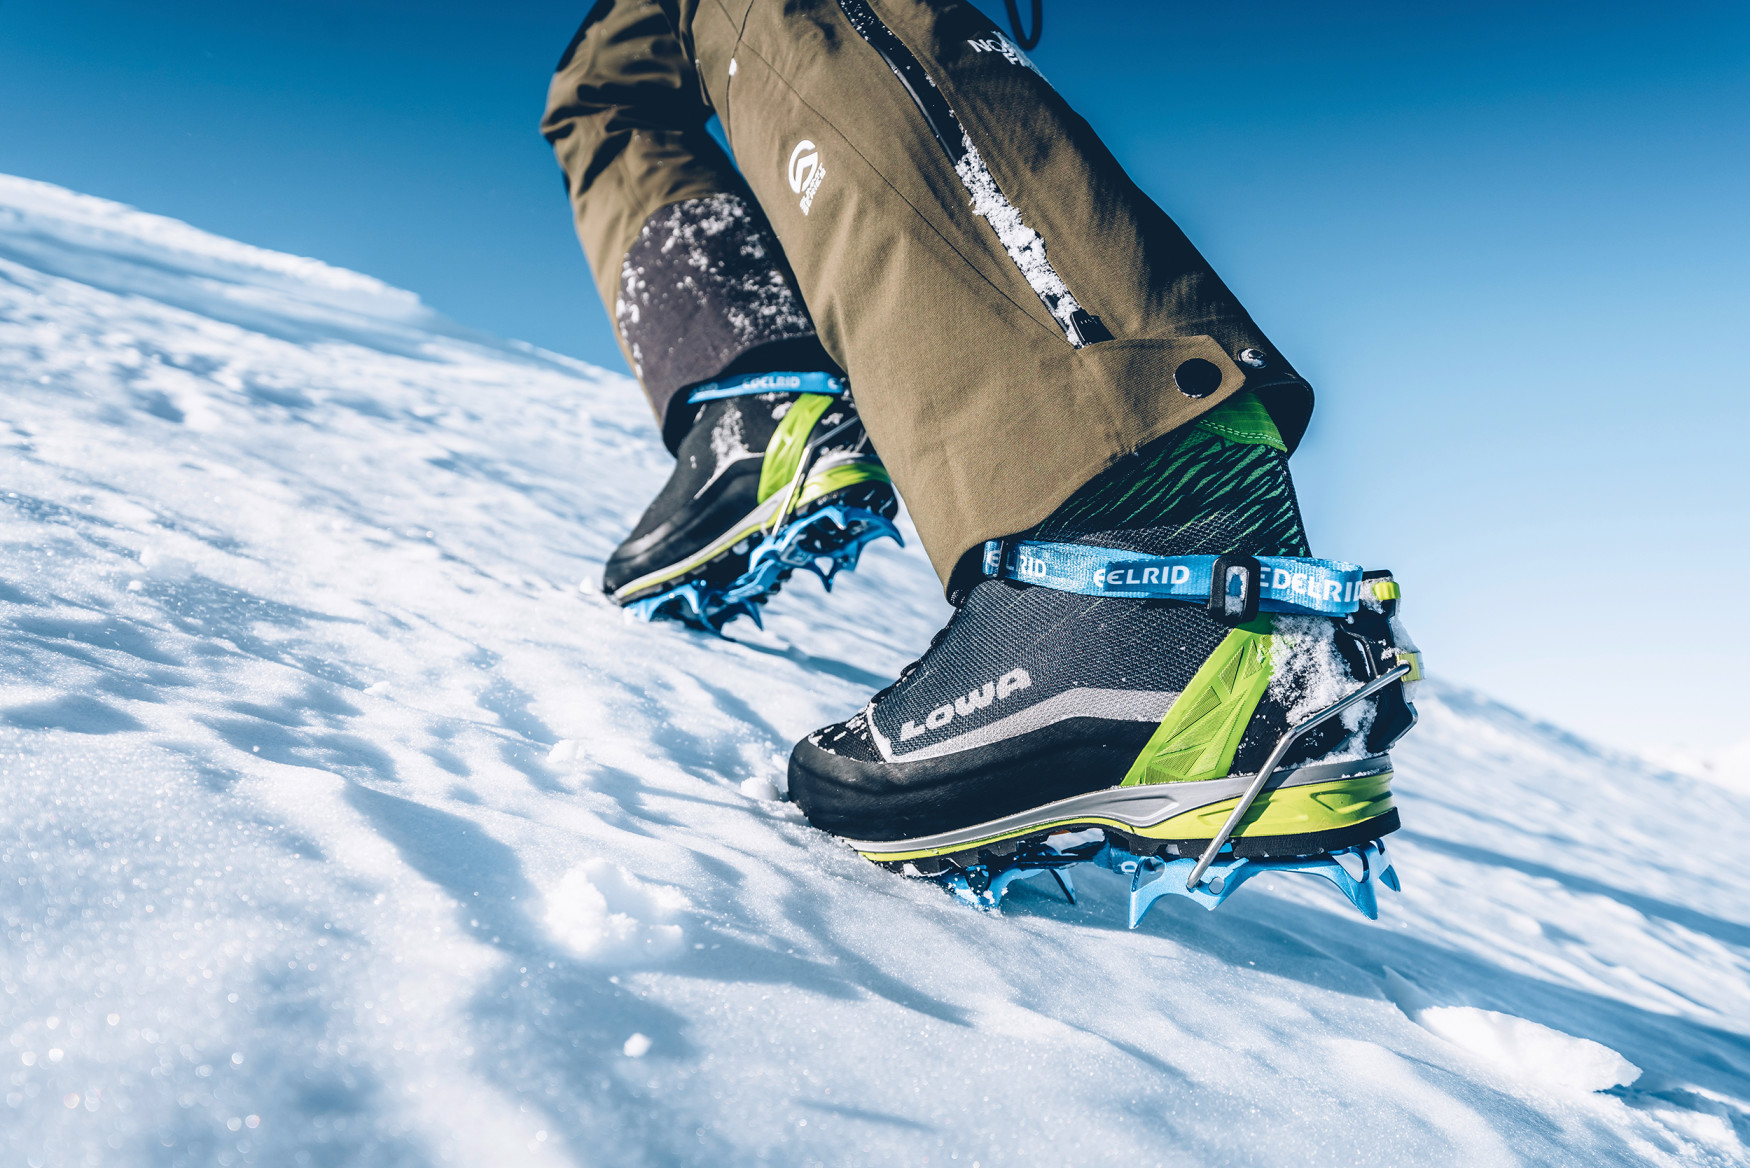 Image photo with the ALPINE ICE GTX, Charmonix 2018